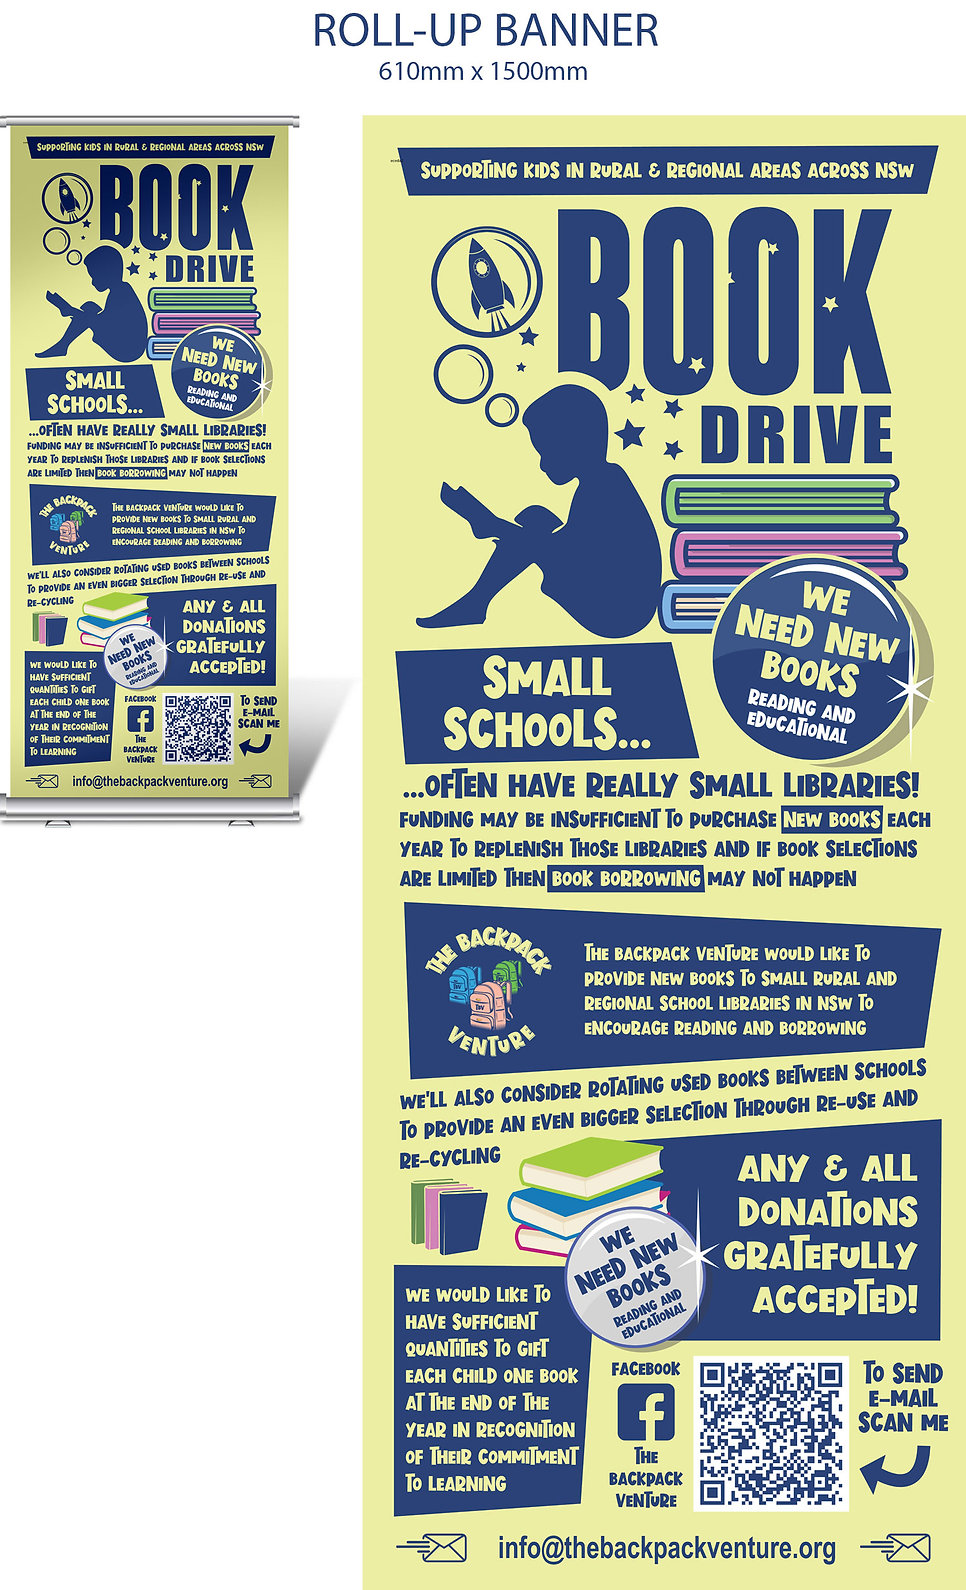 Banner-Backpack-Roll-Up-Book-Drive-1.jpg